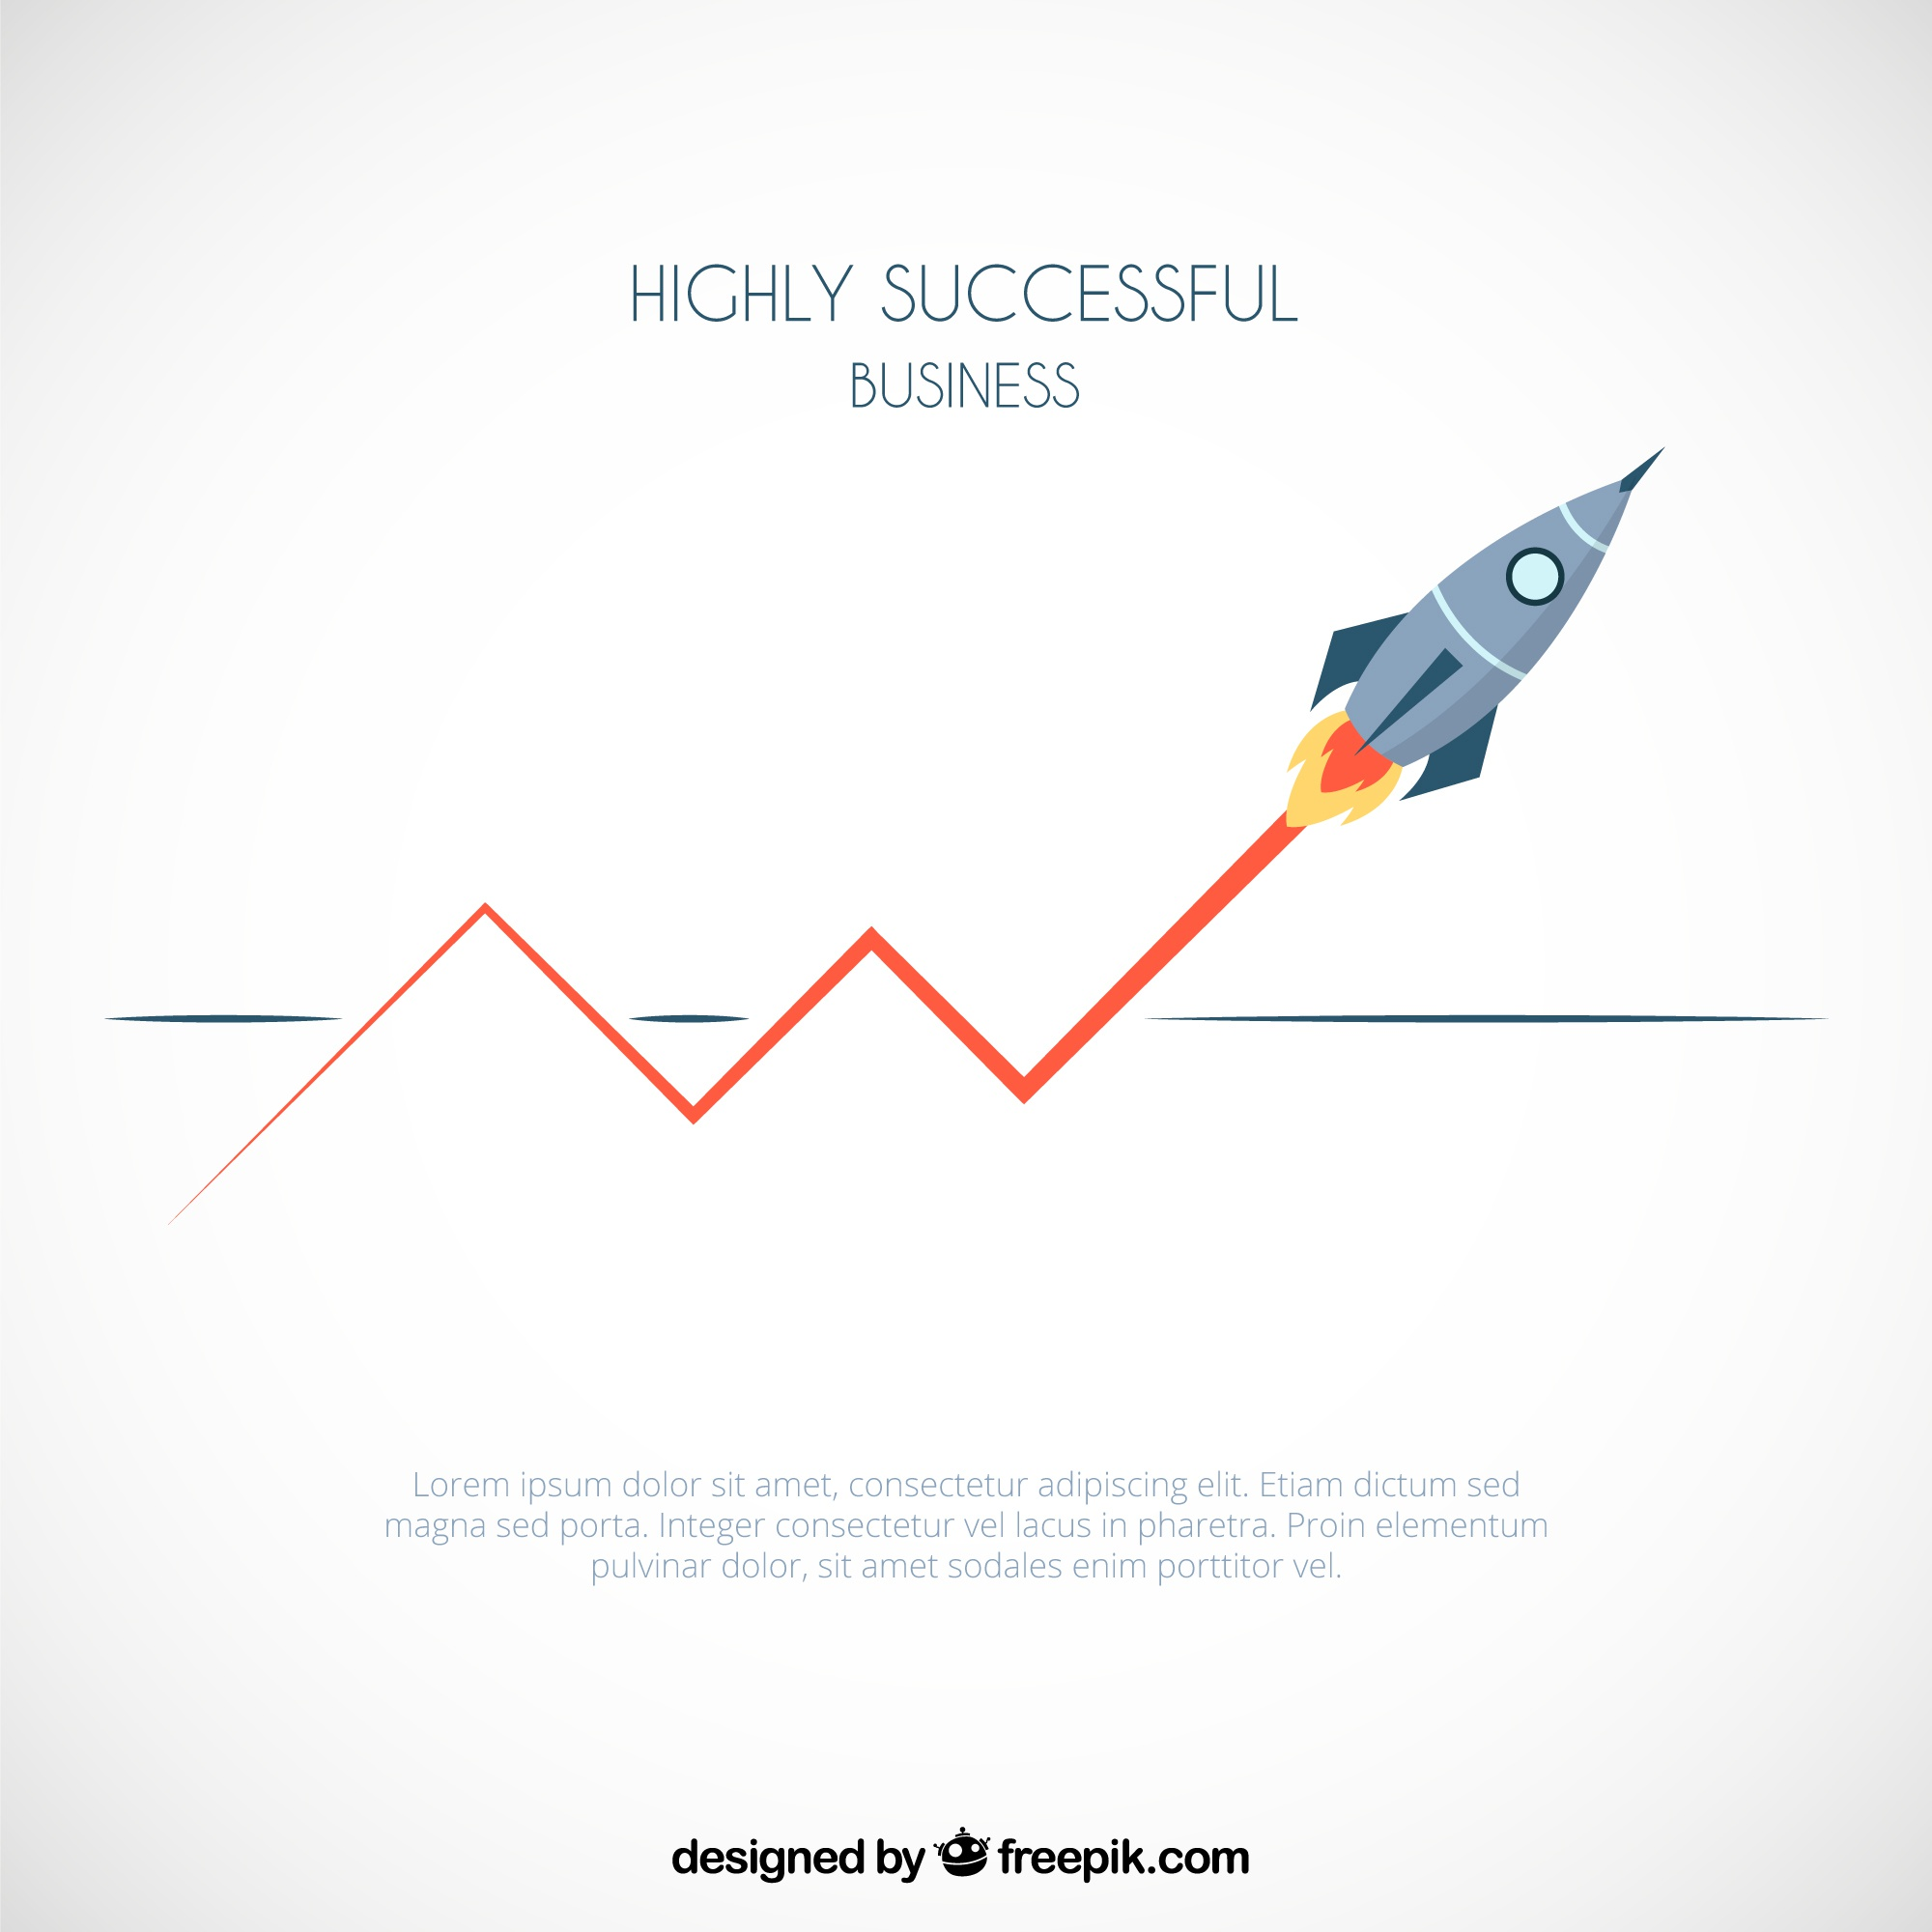 Successful business infographic